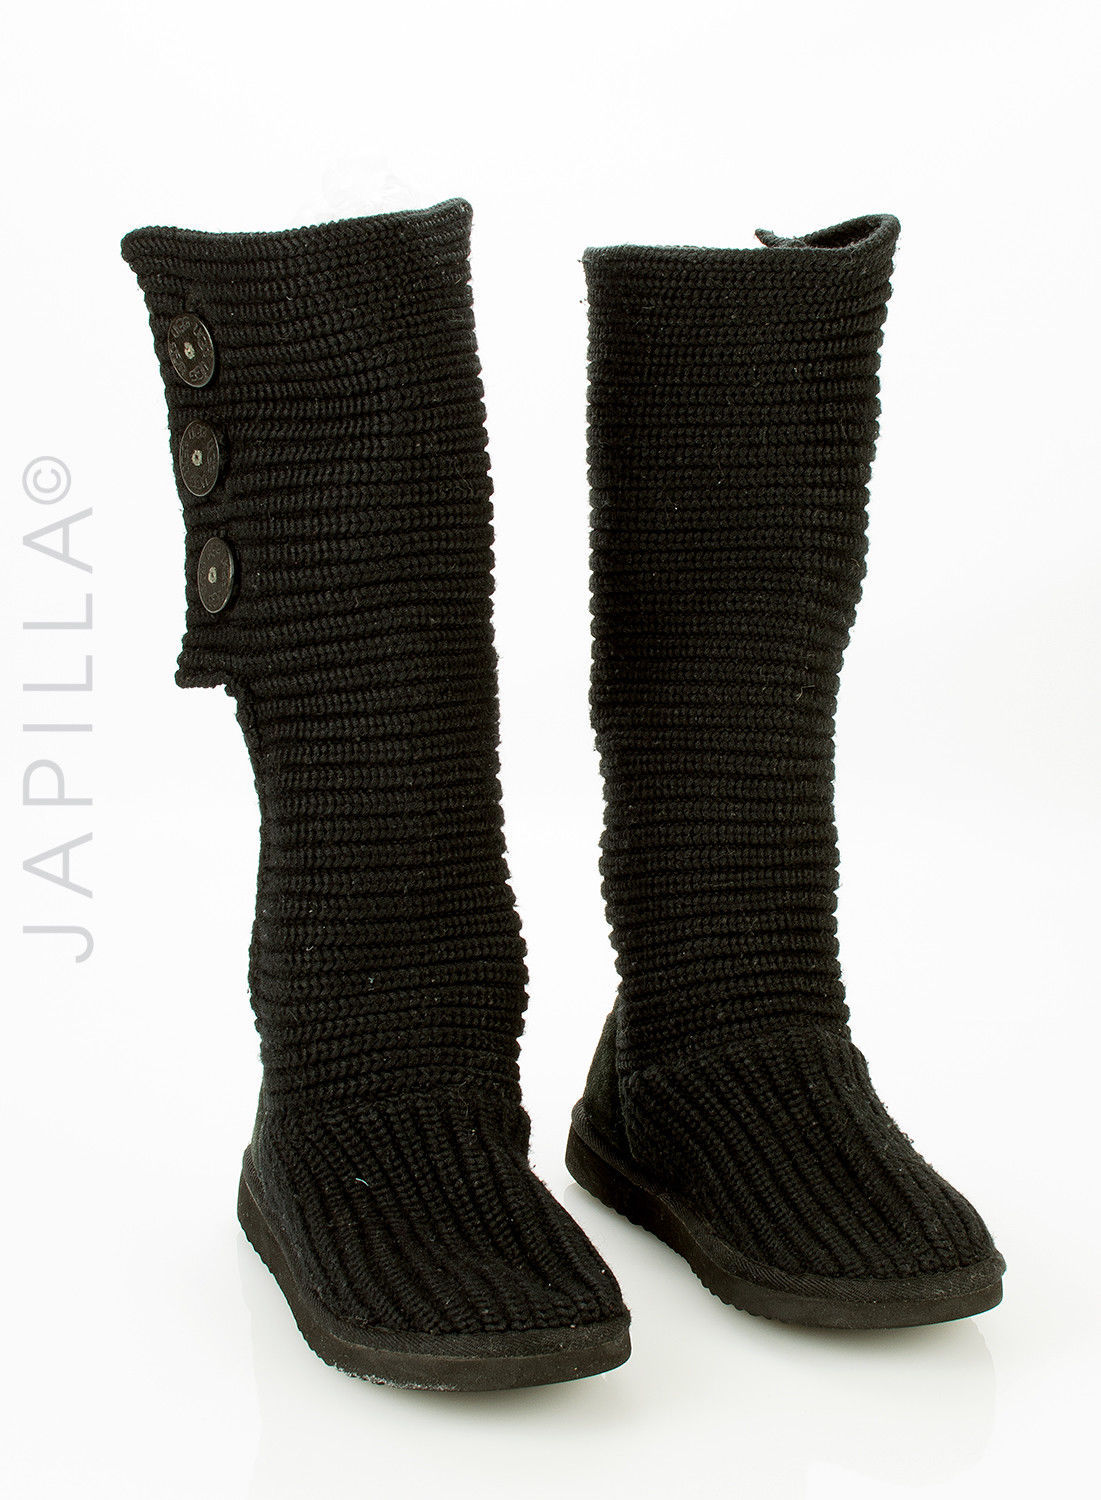 79af156971d Ugg Classic Cardy Black Knit Boots Size 7 and 50 similar items